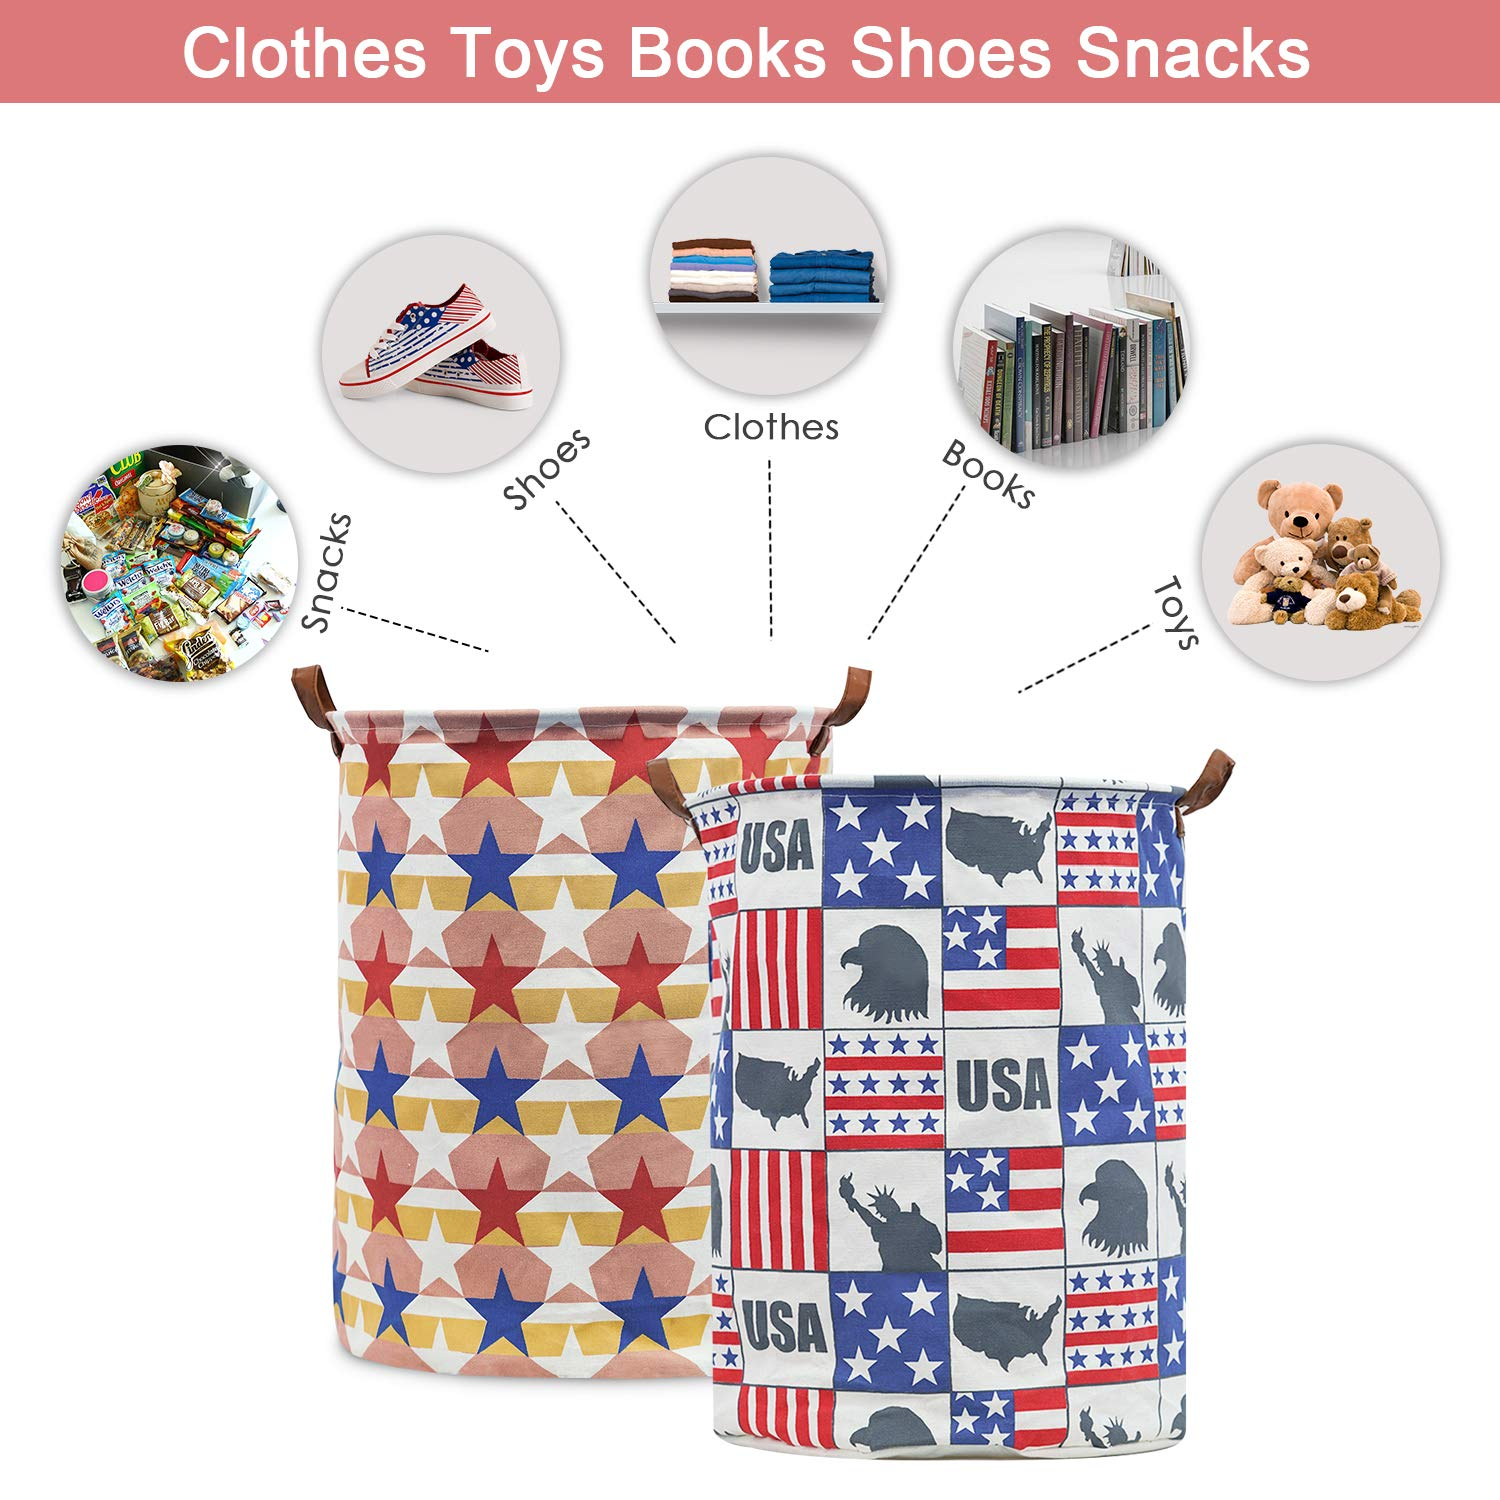 Collapsible Waterproof Laundry Hamper,Canvas Organizer Bin for Kids Toys Homipooty Storage Bins,19.6 /″ Large Laundry Baskets-2 Packs Clothes Baby Hamper Star and Flag Bedroom Home,Gift Baskets